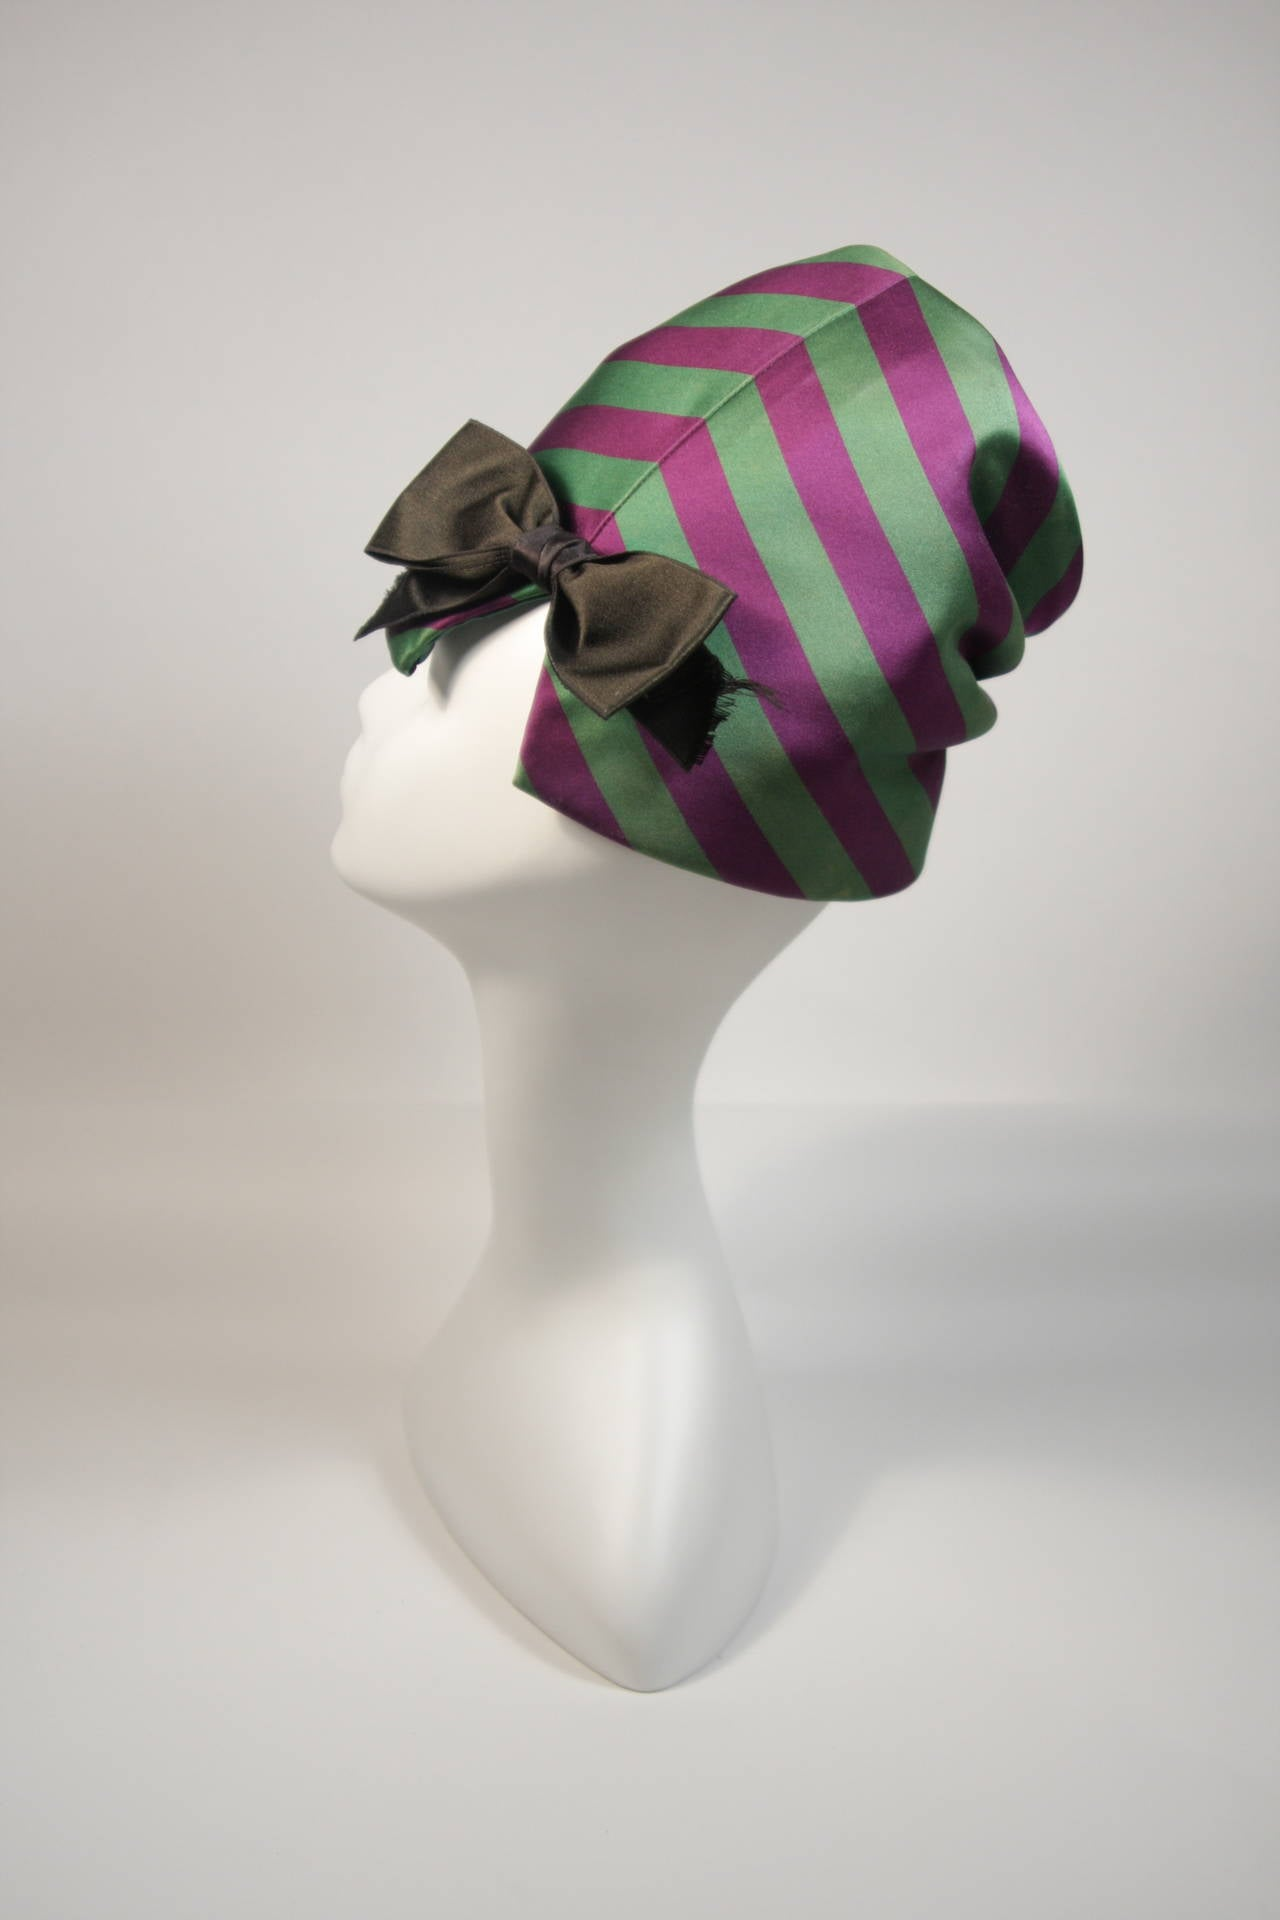 Yves Saint Laurent Rive Gauche Purple and Green Silk Rouched Hat with Bow 6